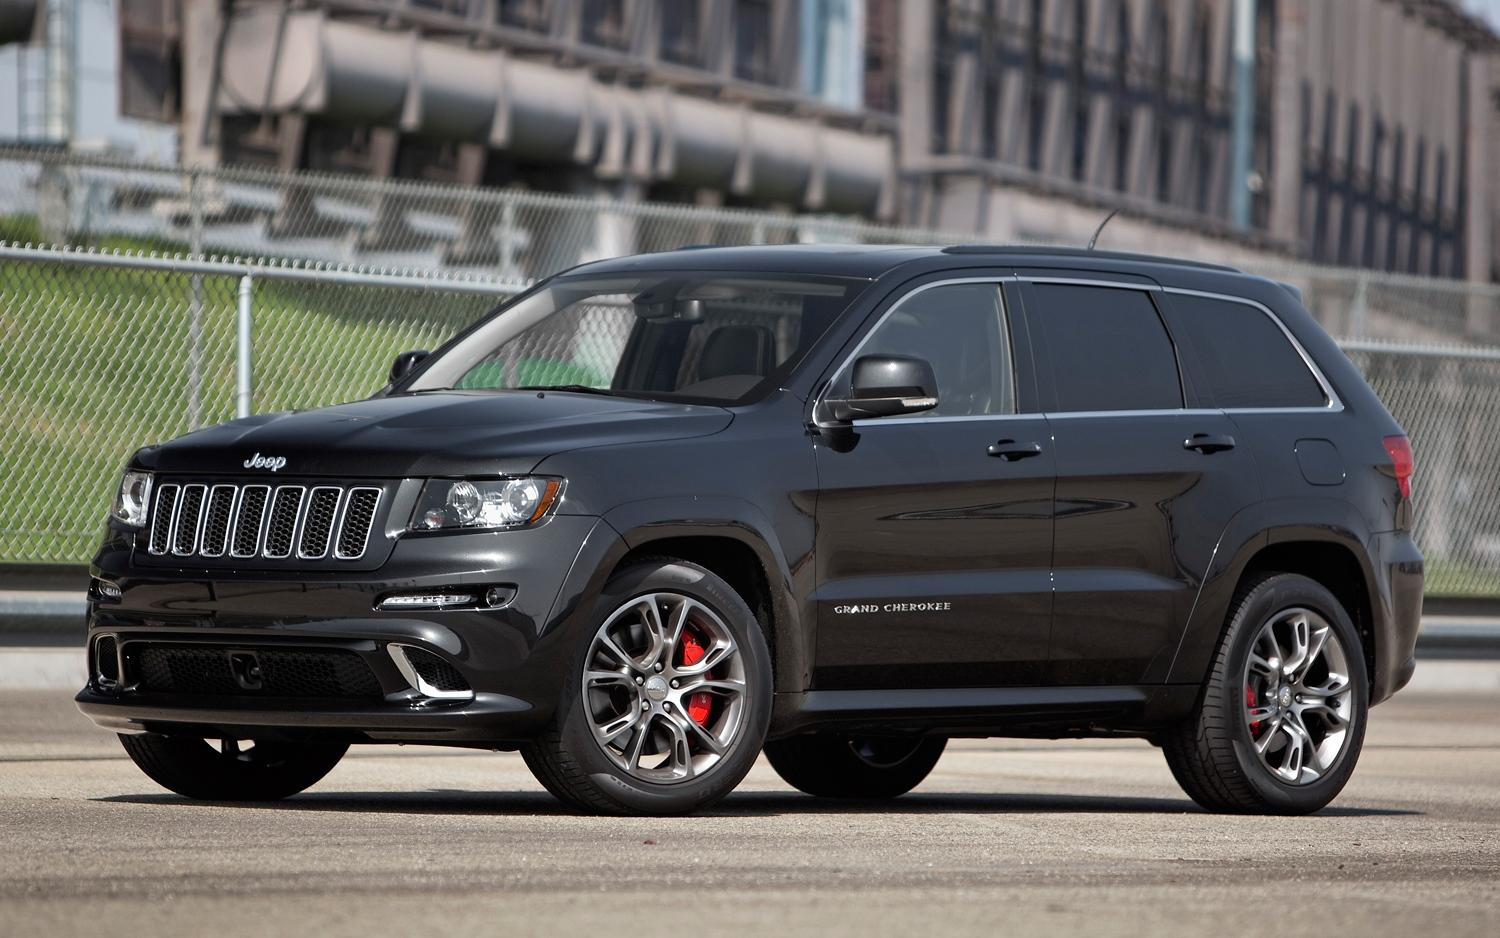 2012-jeep-cherokee-srt8-front-three-quarters-view